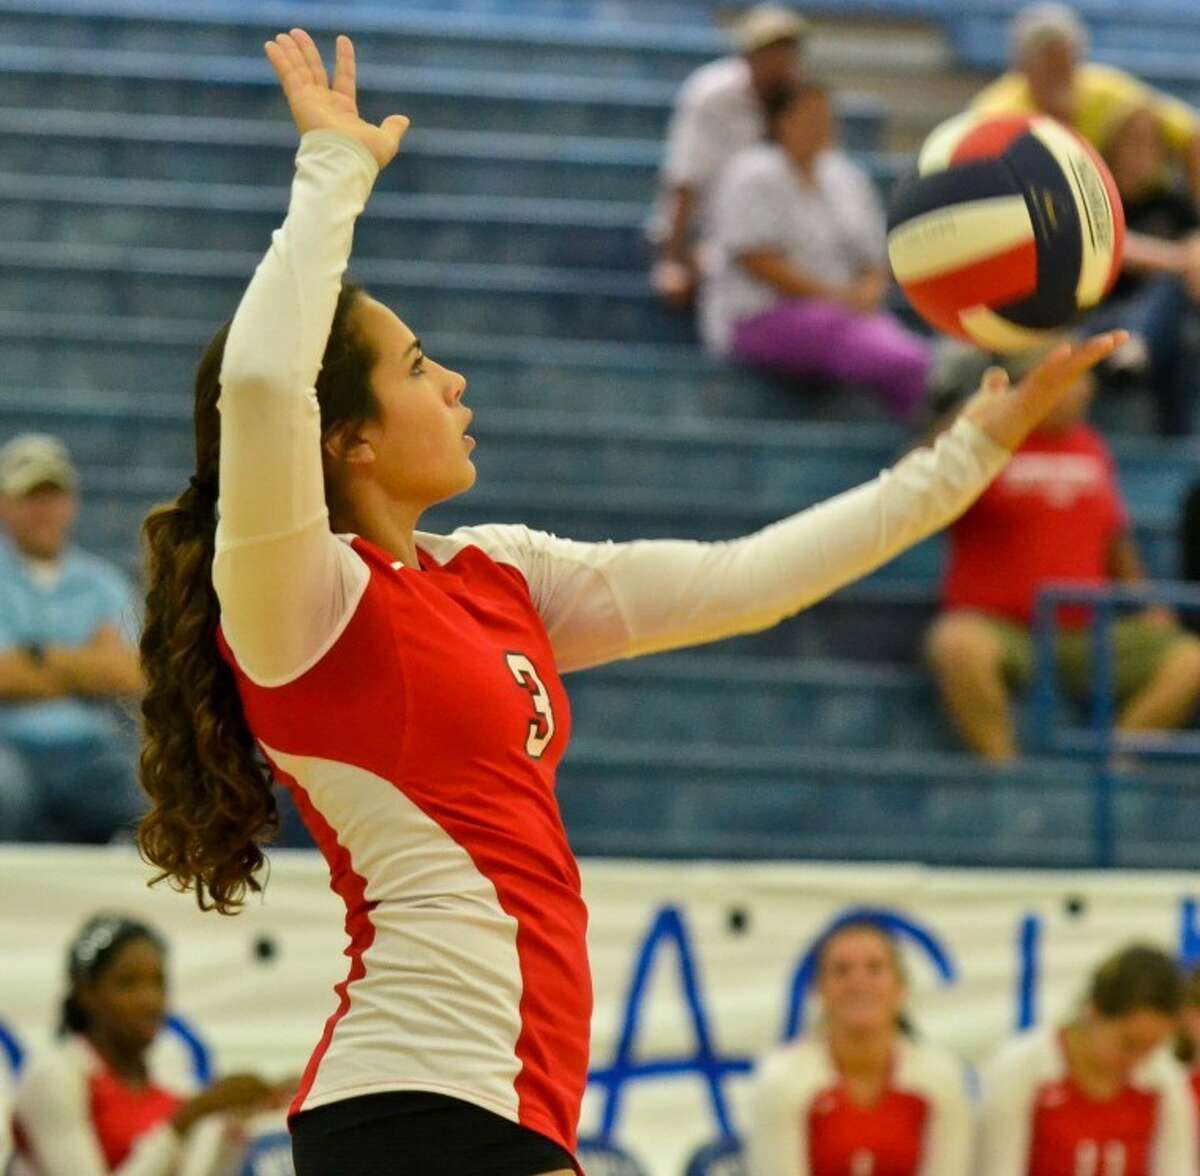 Kaemen Alonzo prepares to serve in the first game of Crosby's 3-0 win at New Caney Sept. 4.